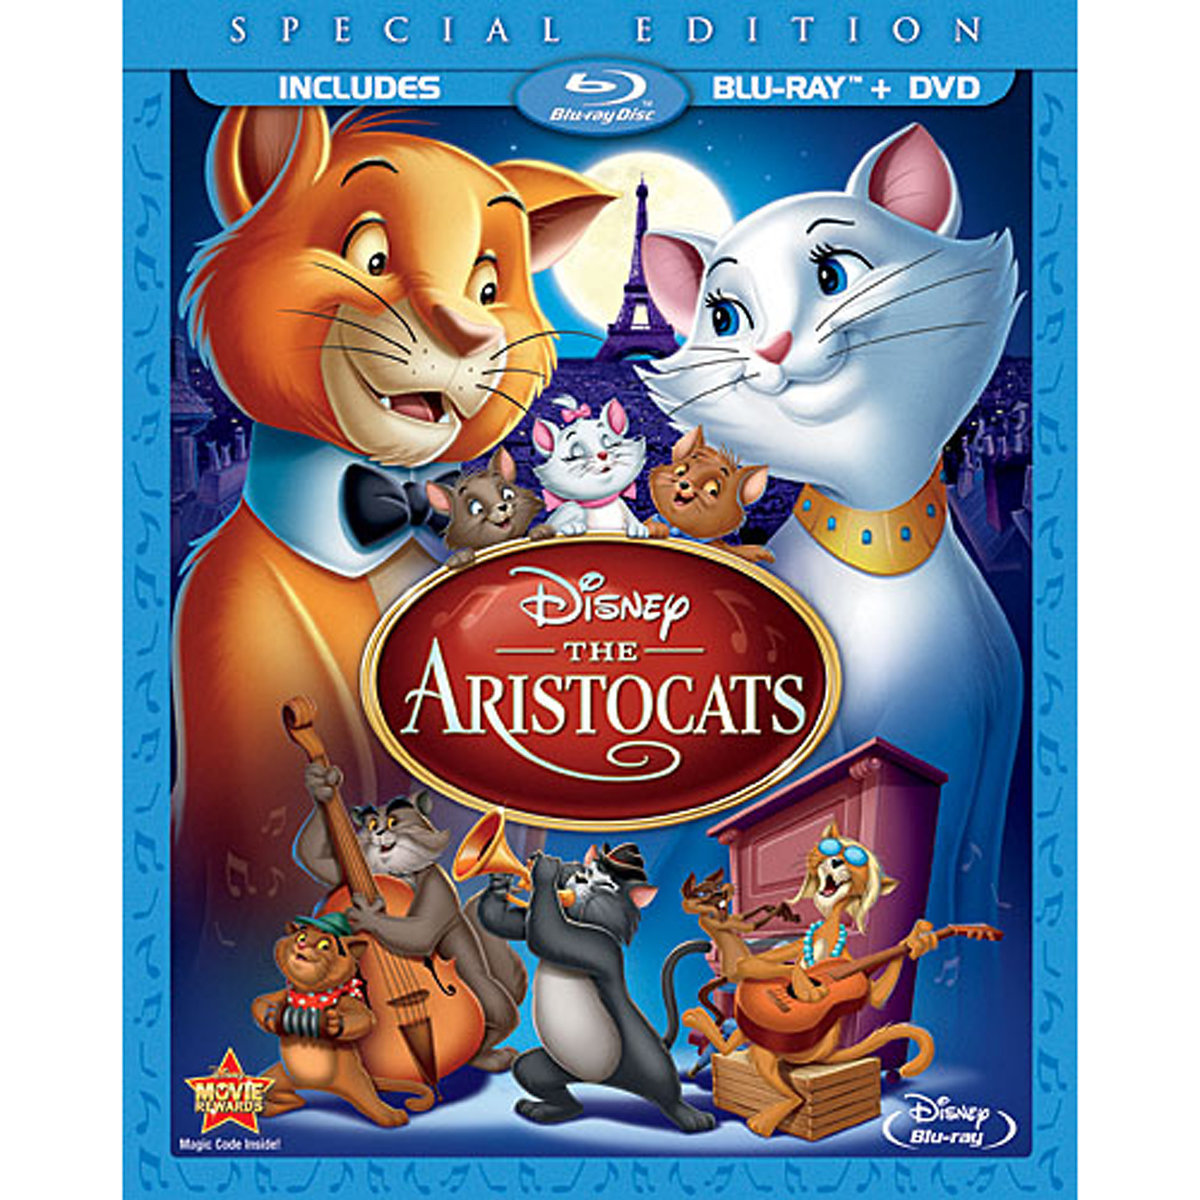 The Aristocats (Special Edition) (Blu-ray + DVD)